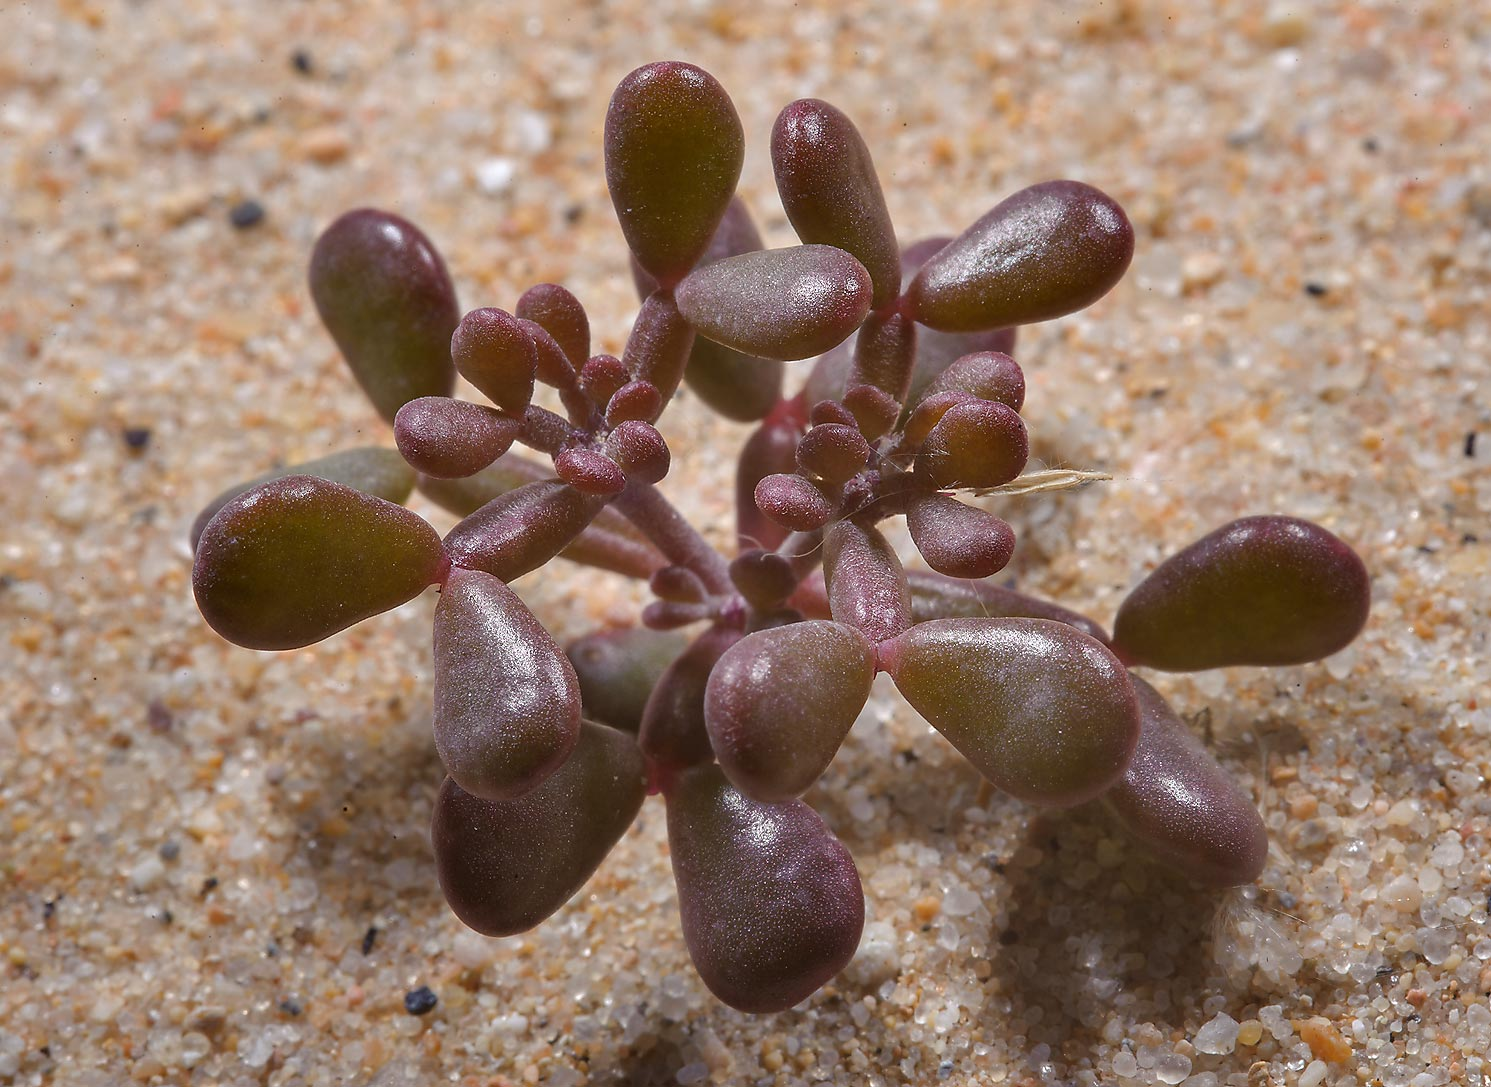 Seedling of a desert plant Tetraena qatarense...sand on a roadside in southern Qatar